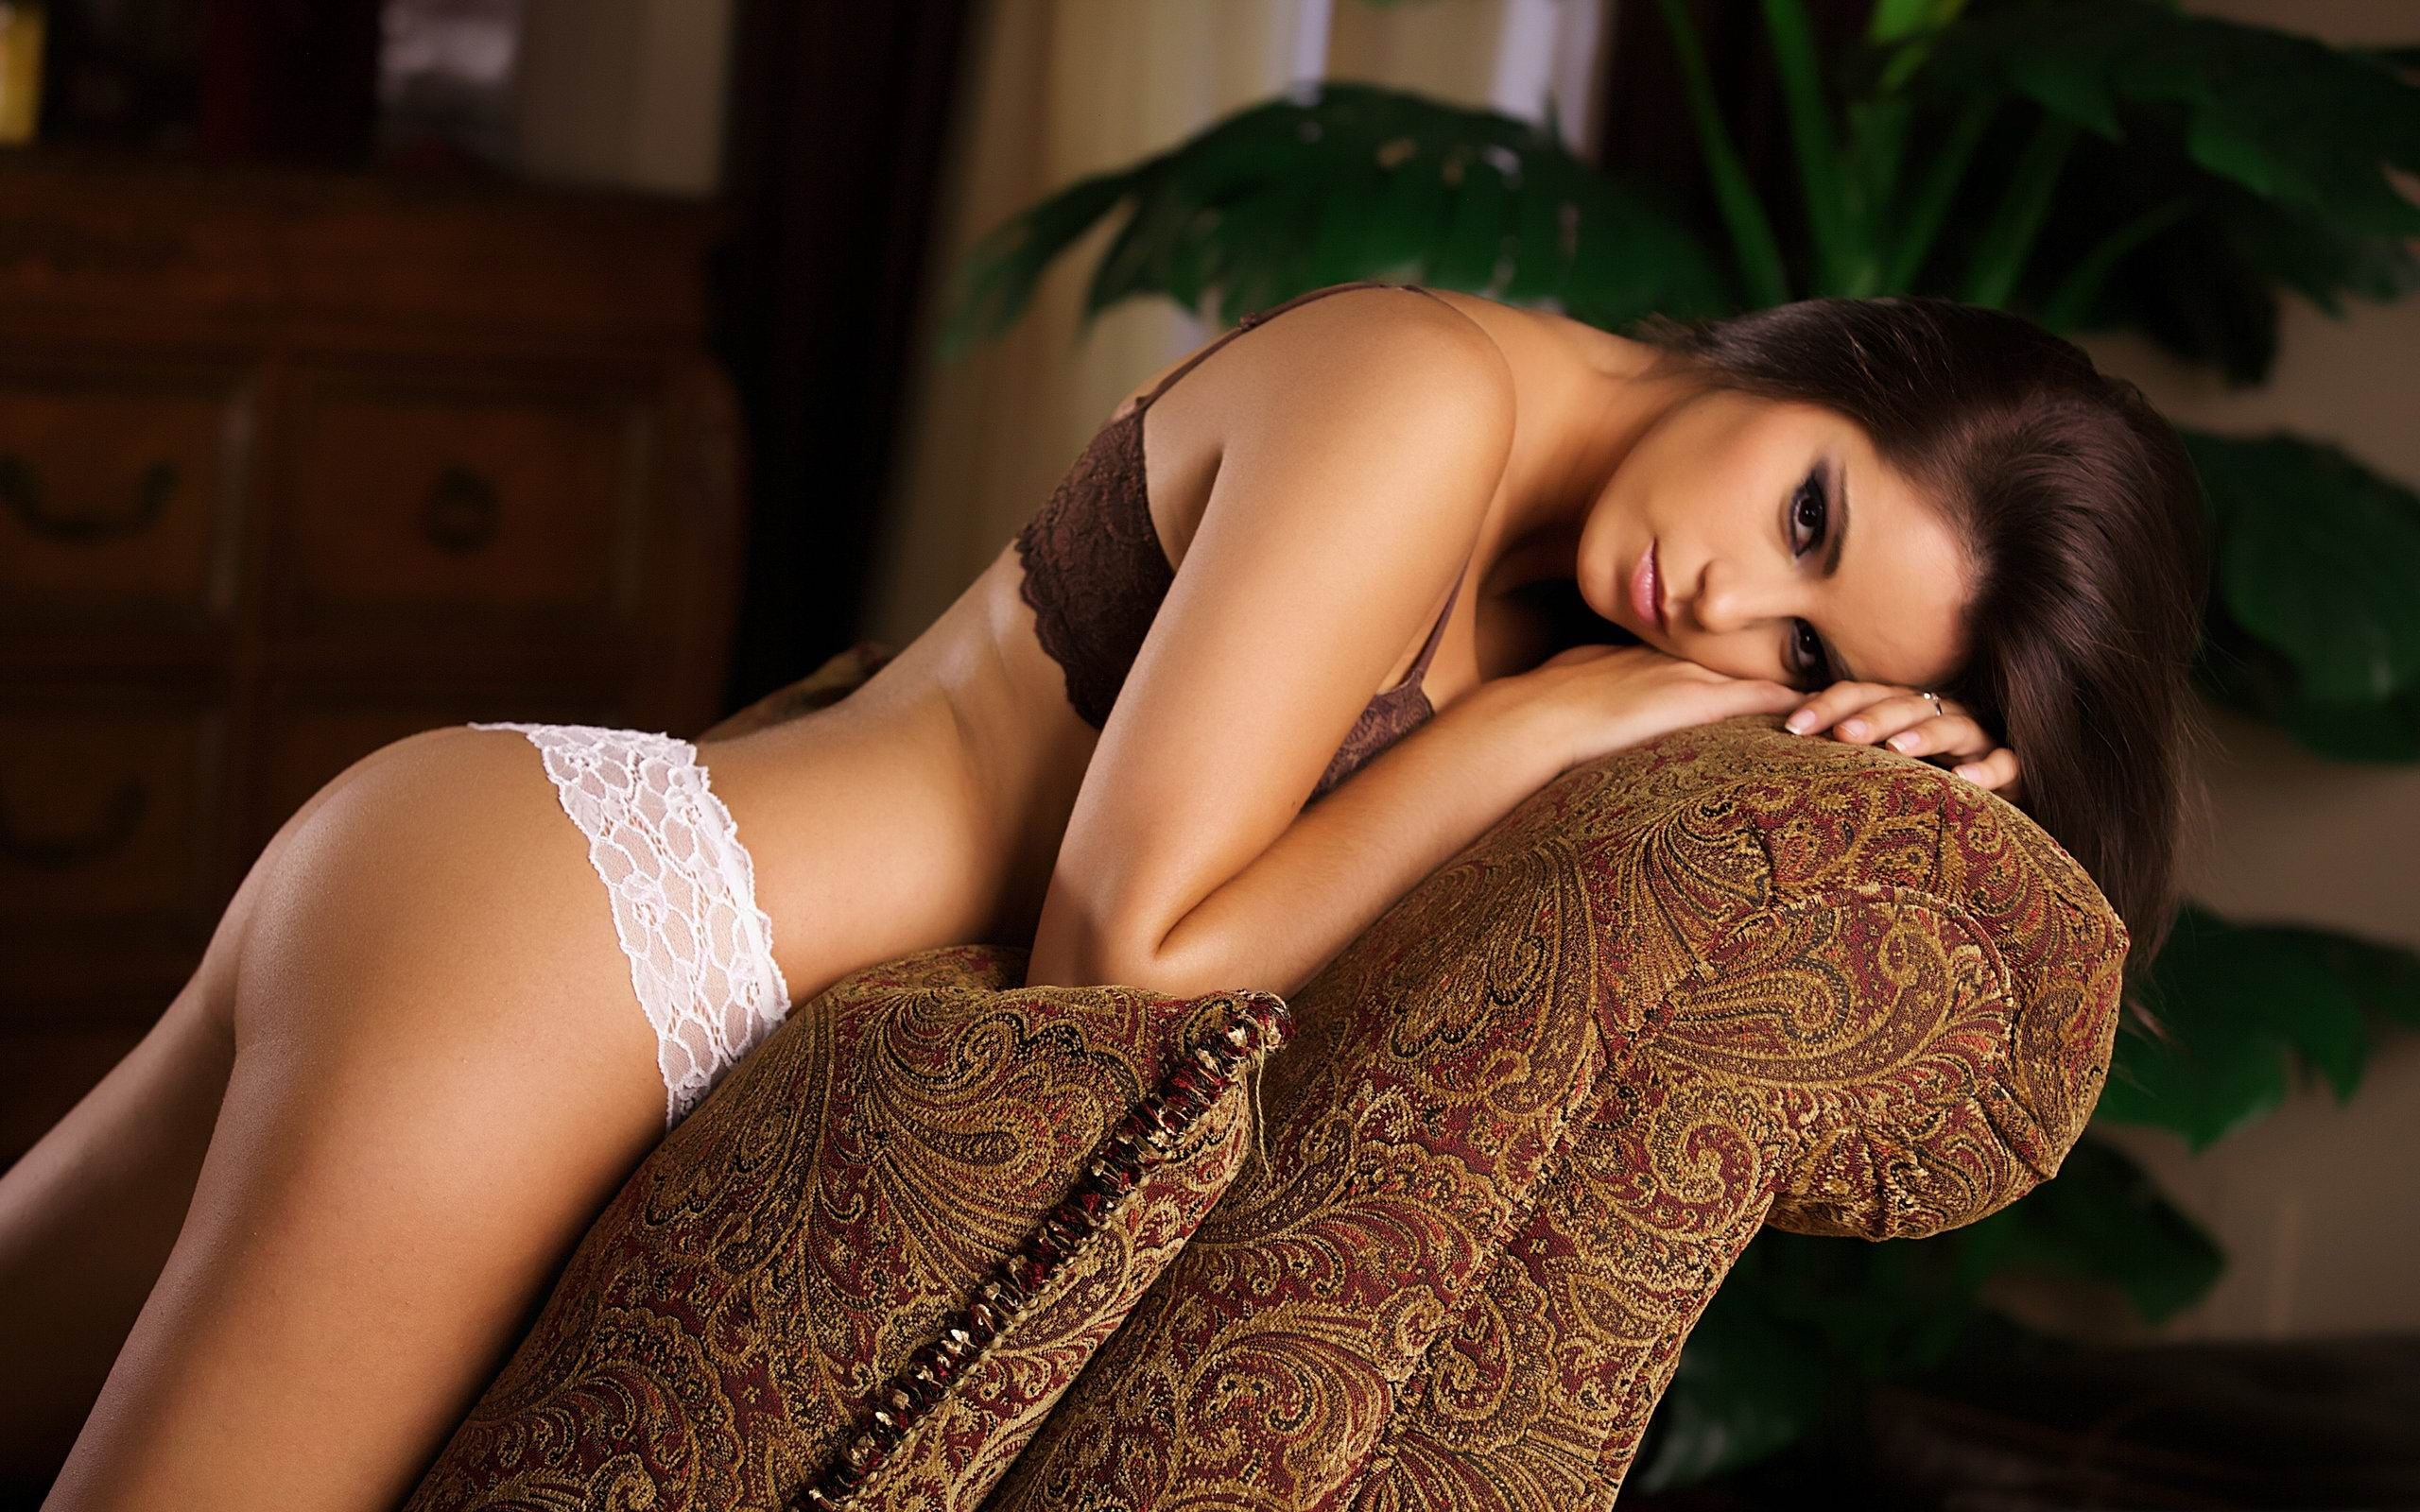 Porn sexy hd photos wallpapers free porn pictures